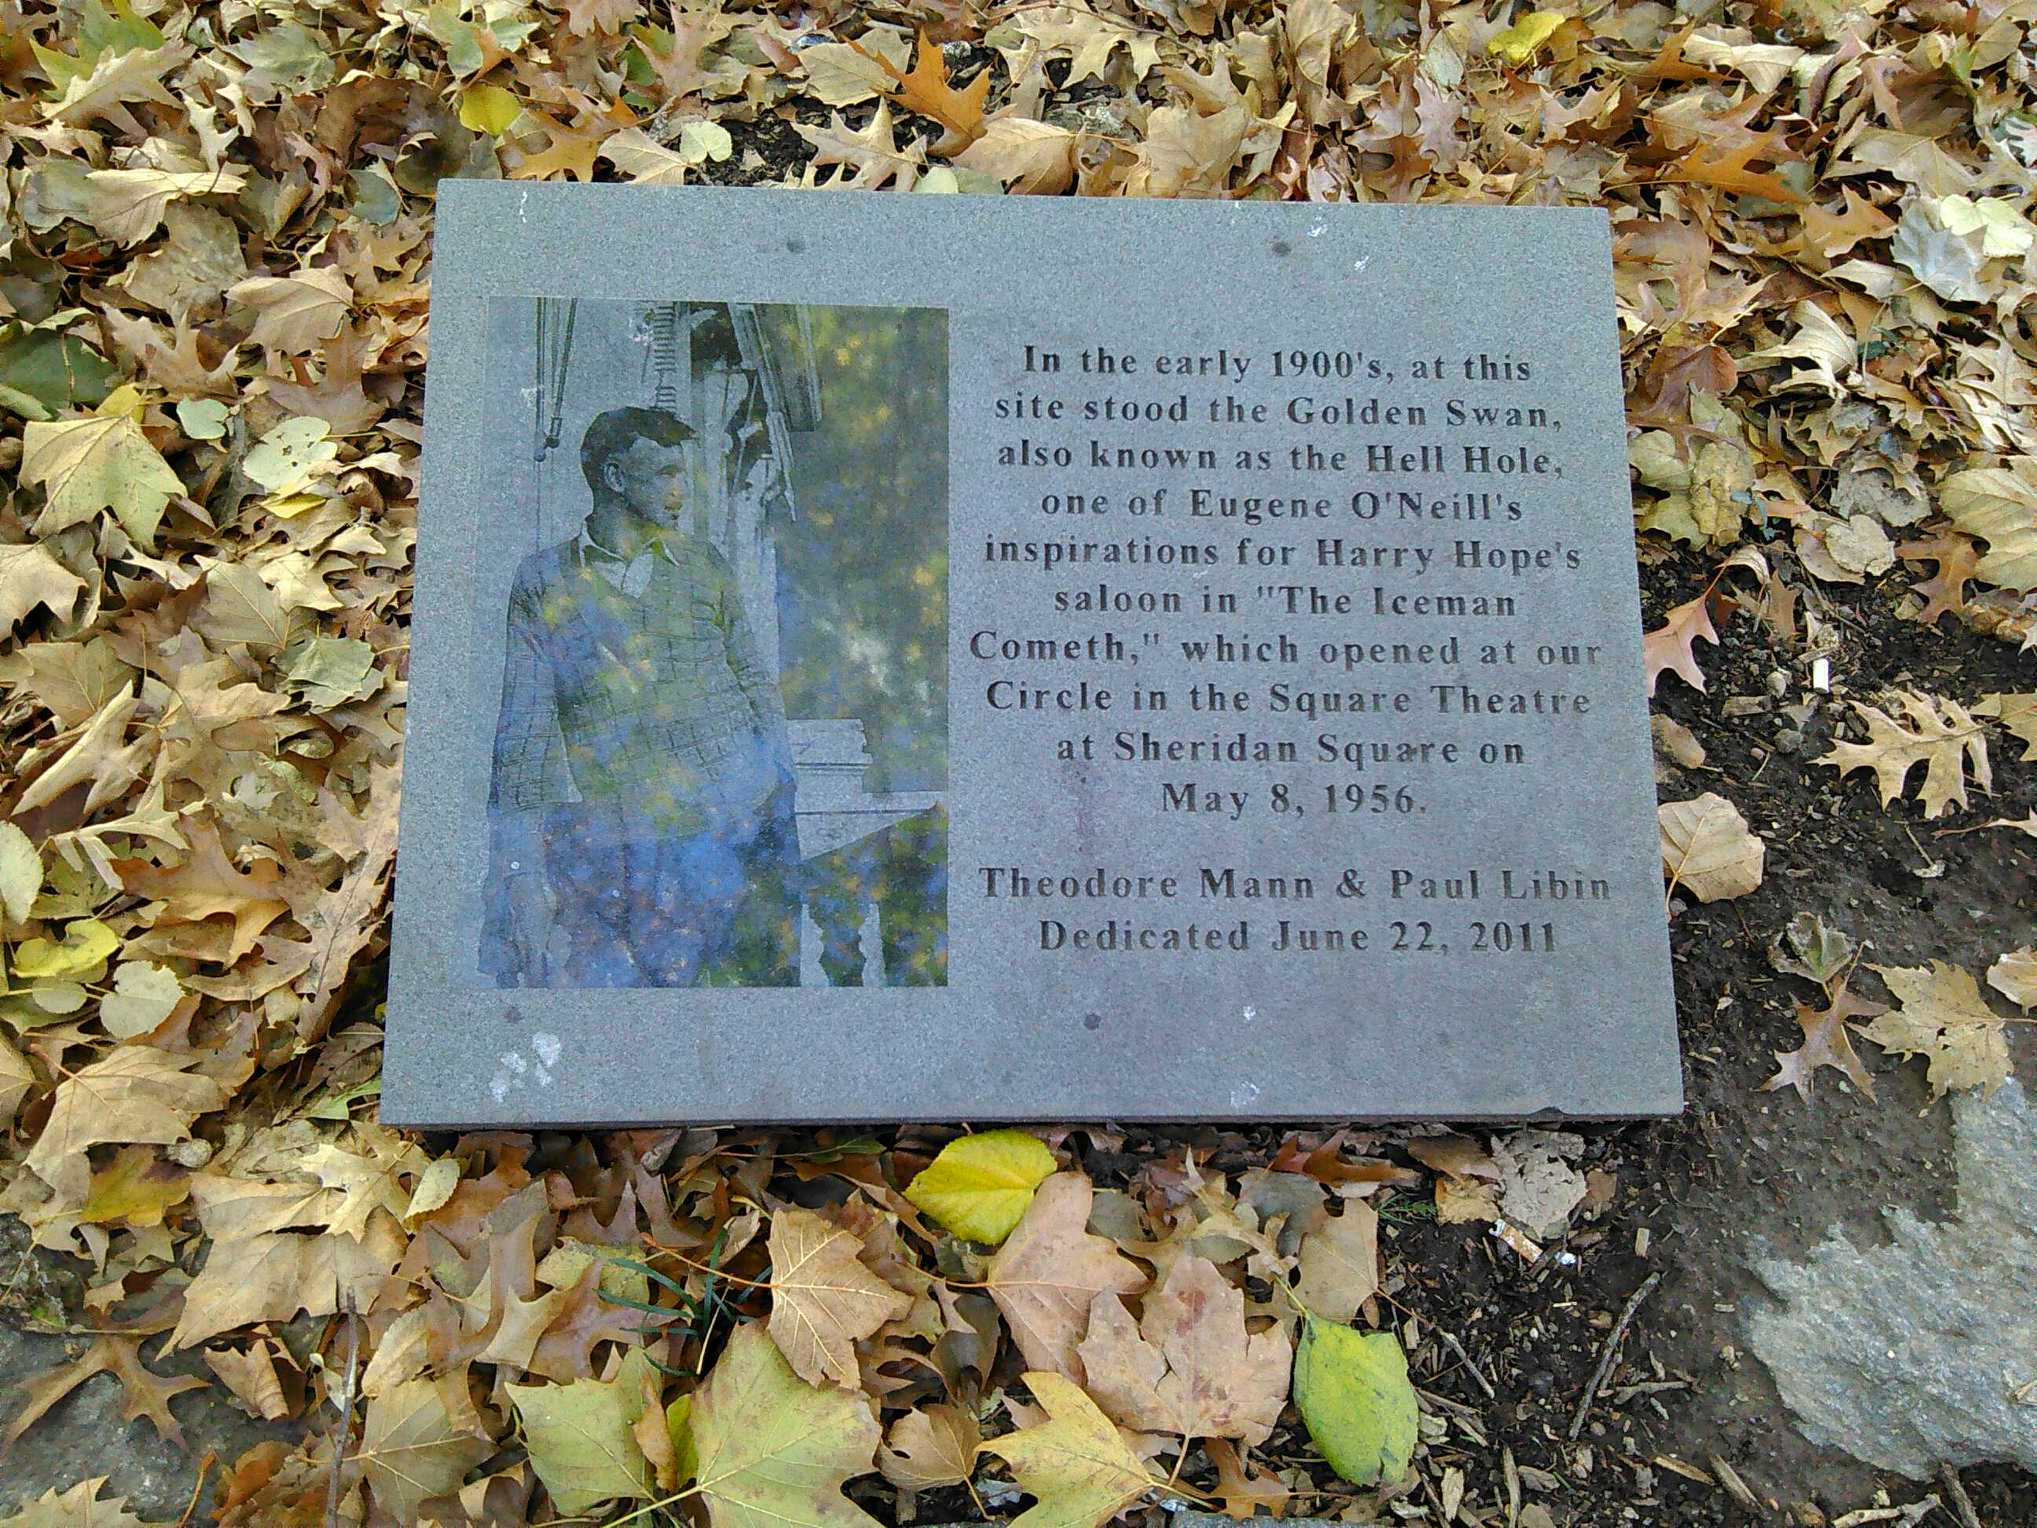 Plaque in Golden Swan Park at corner of West 4th St. and Avenue of the Americas. It is the same West 4th St. that Bob Dylan sings about and lived on.